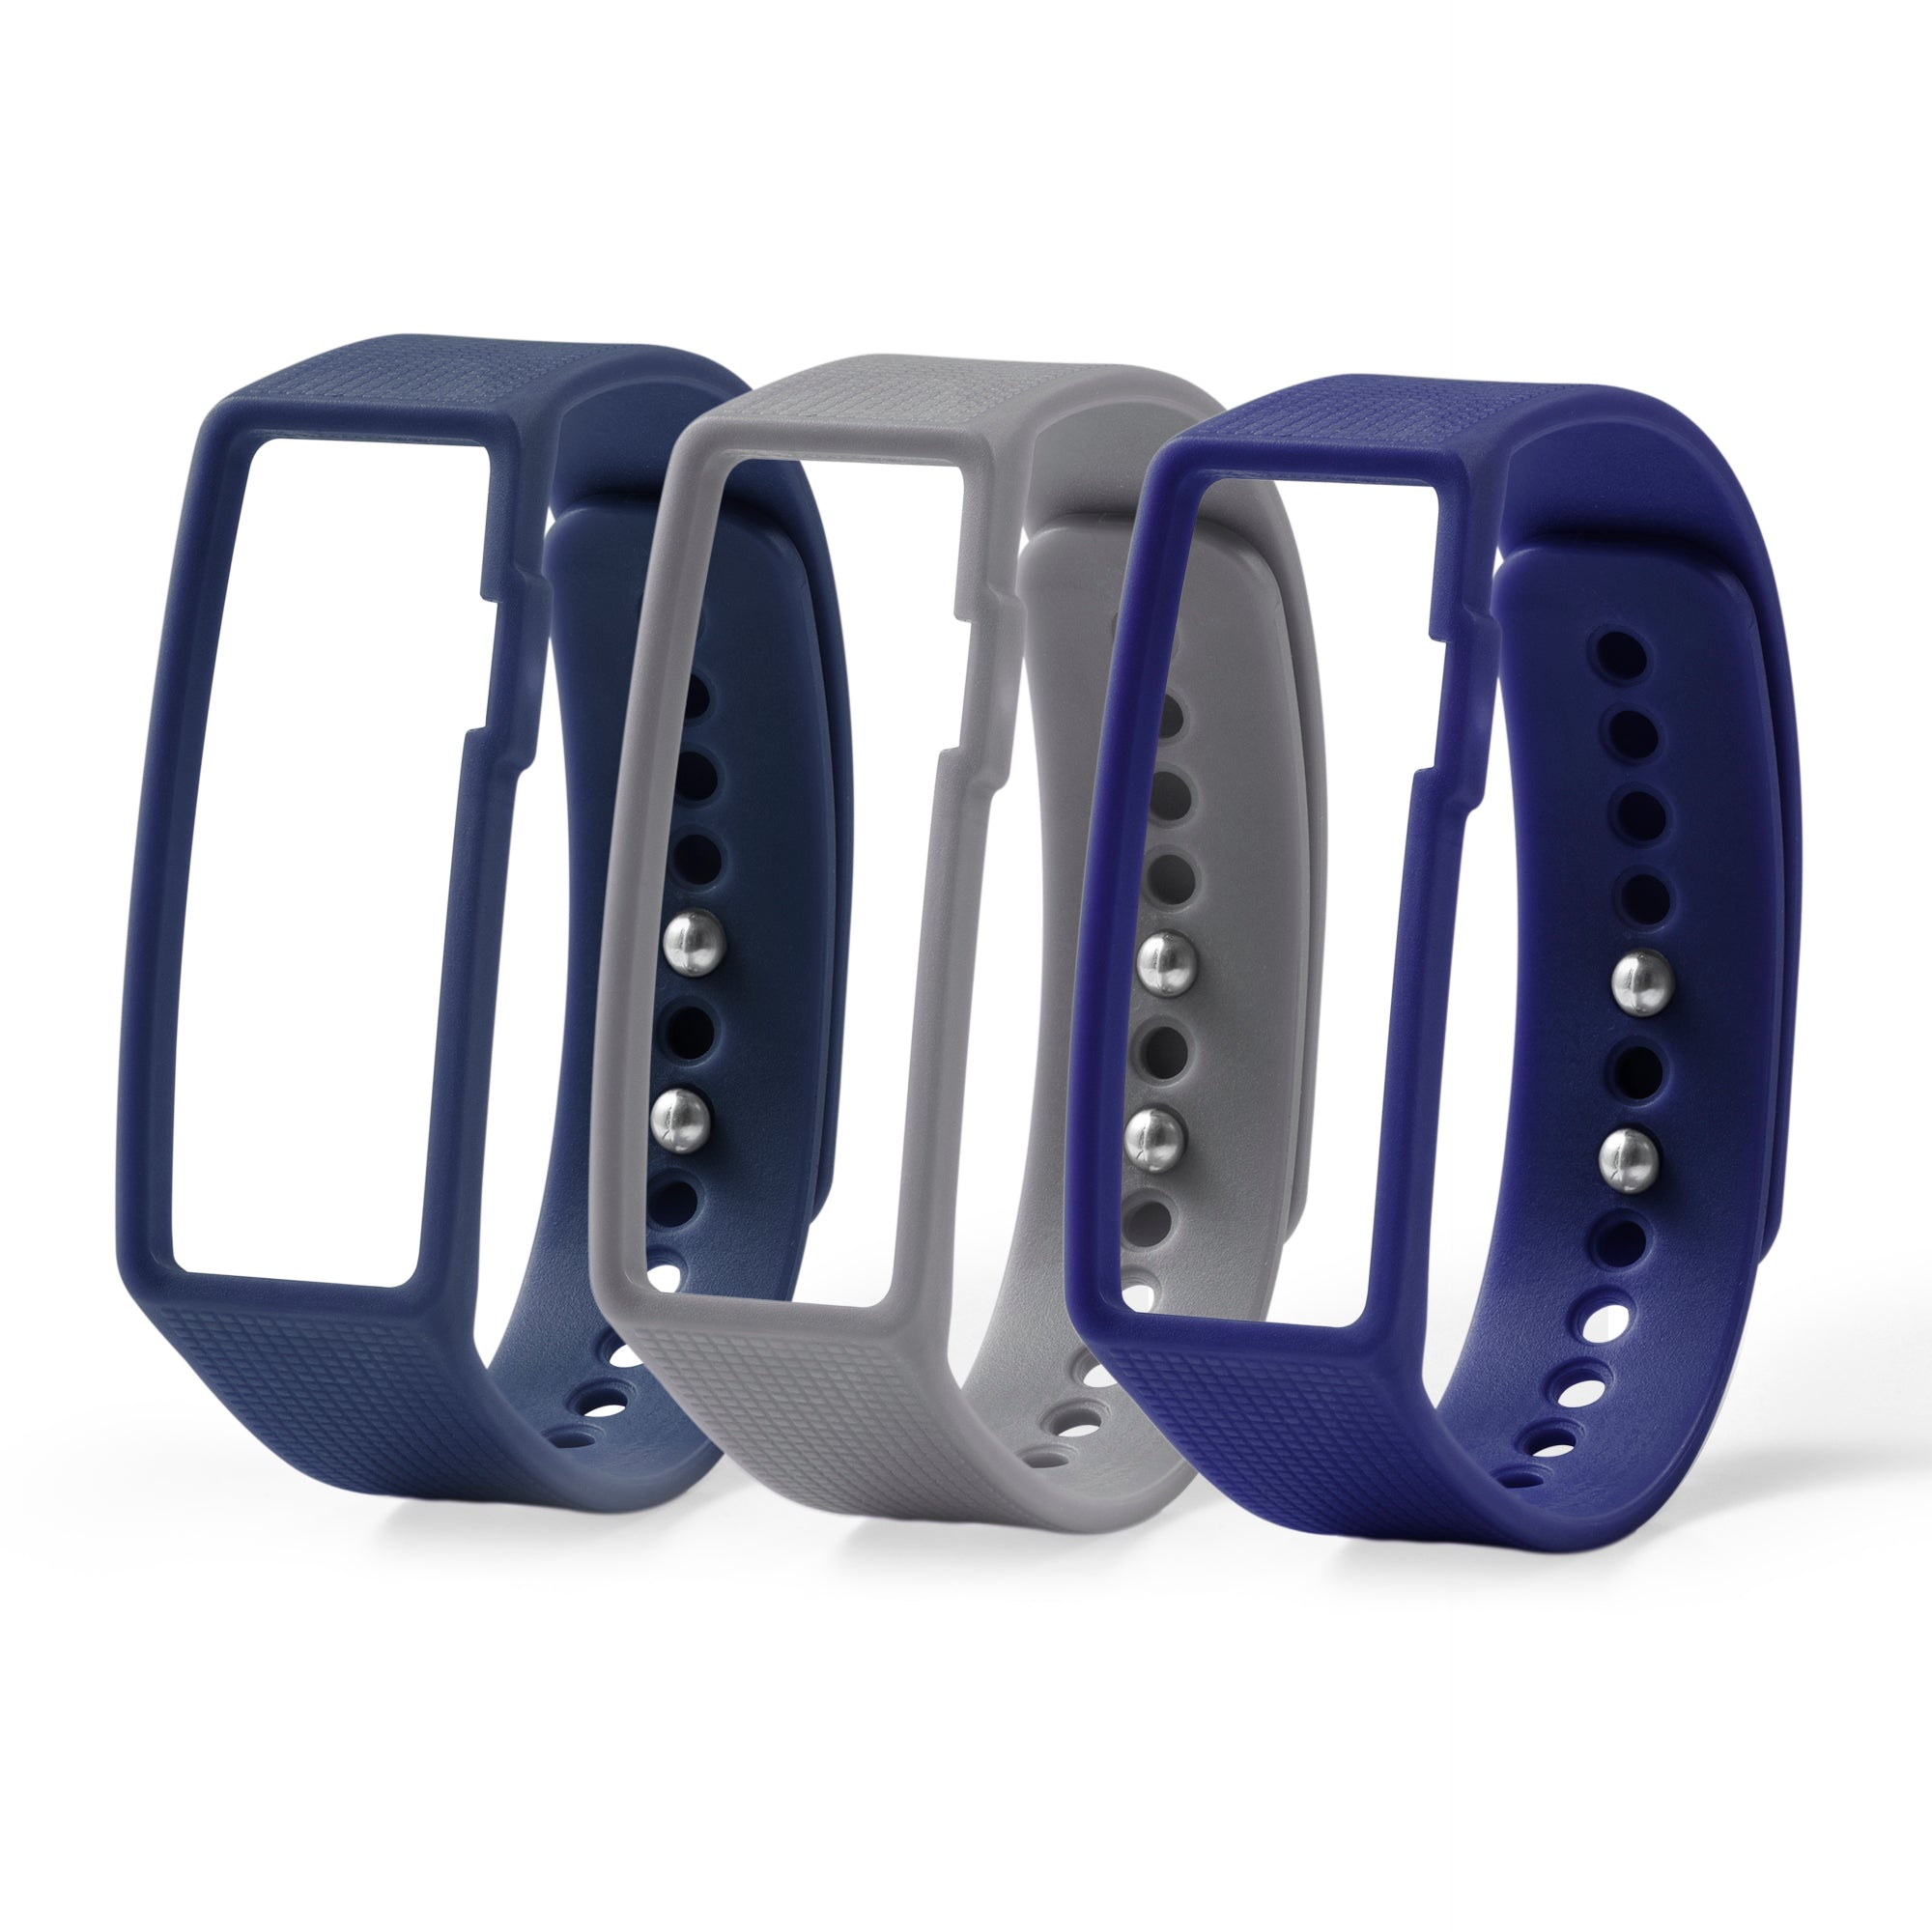 NUBAND ACTIV+ Interchangeable Strap Set4